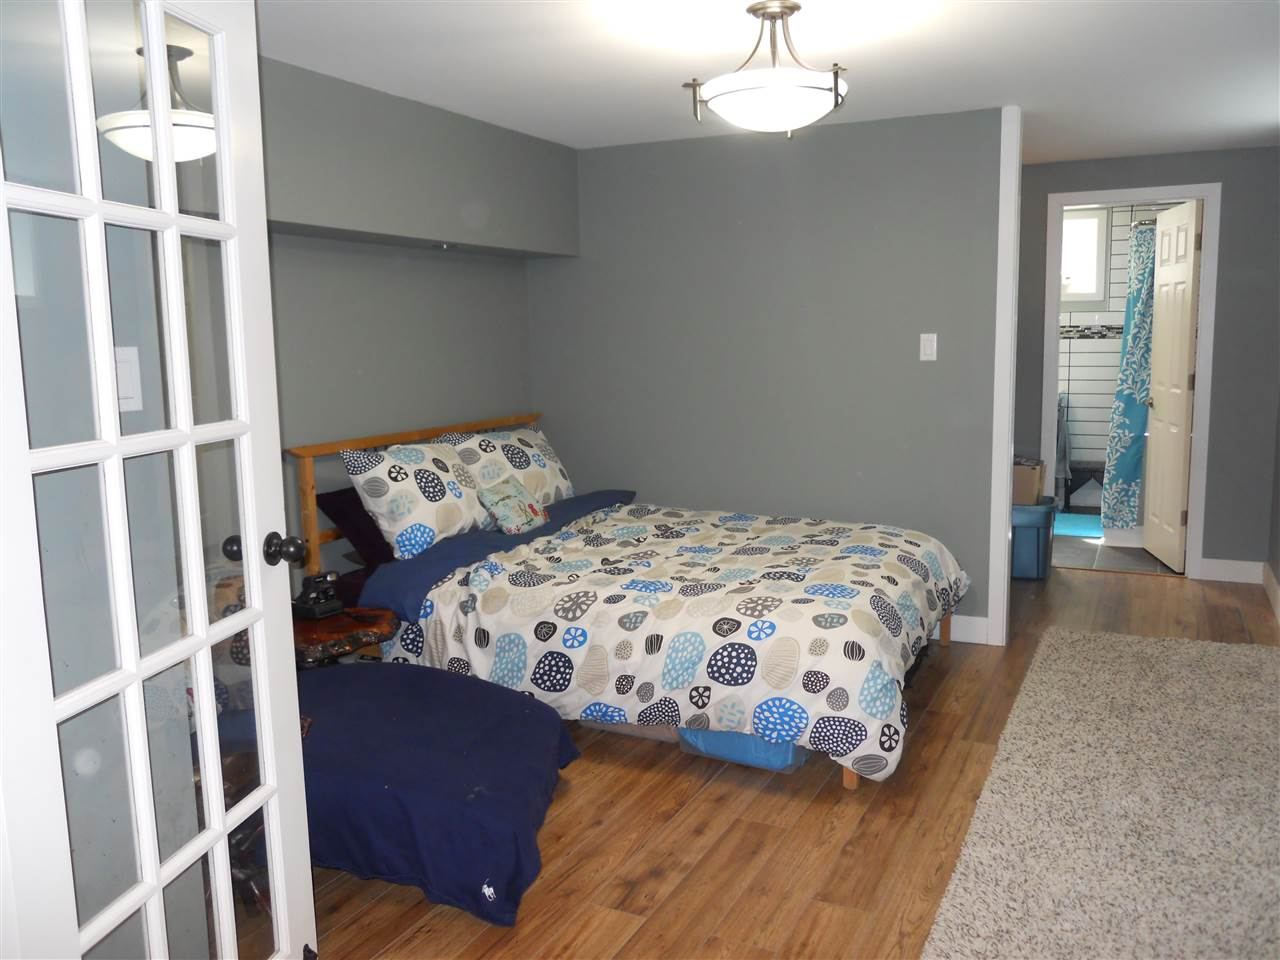 One of the two bedrooms downstairs